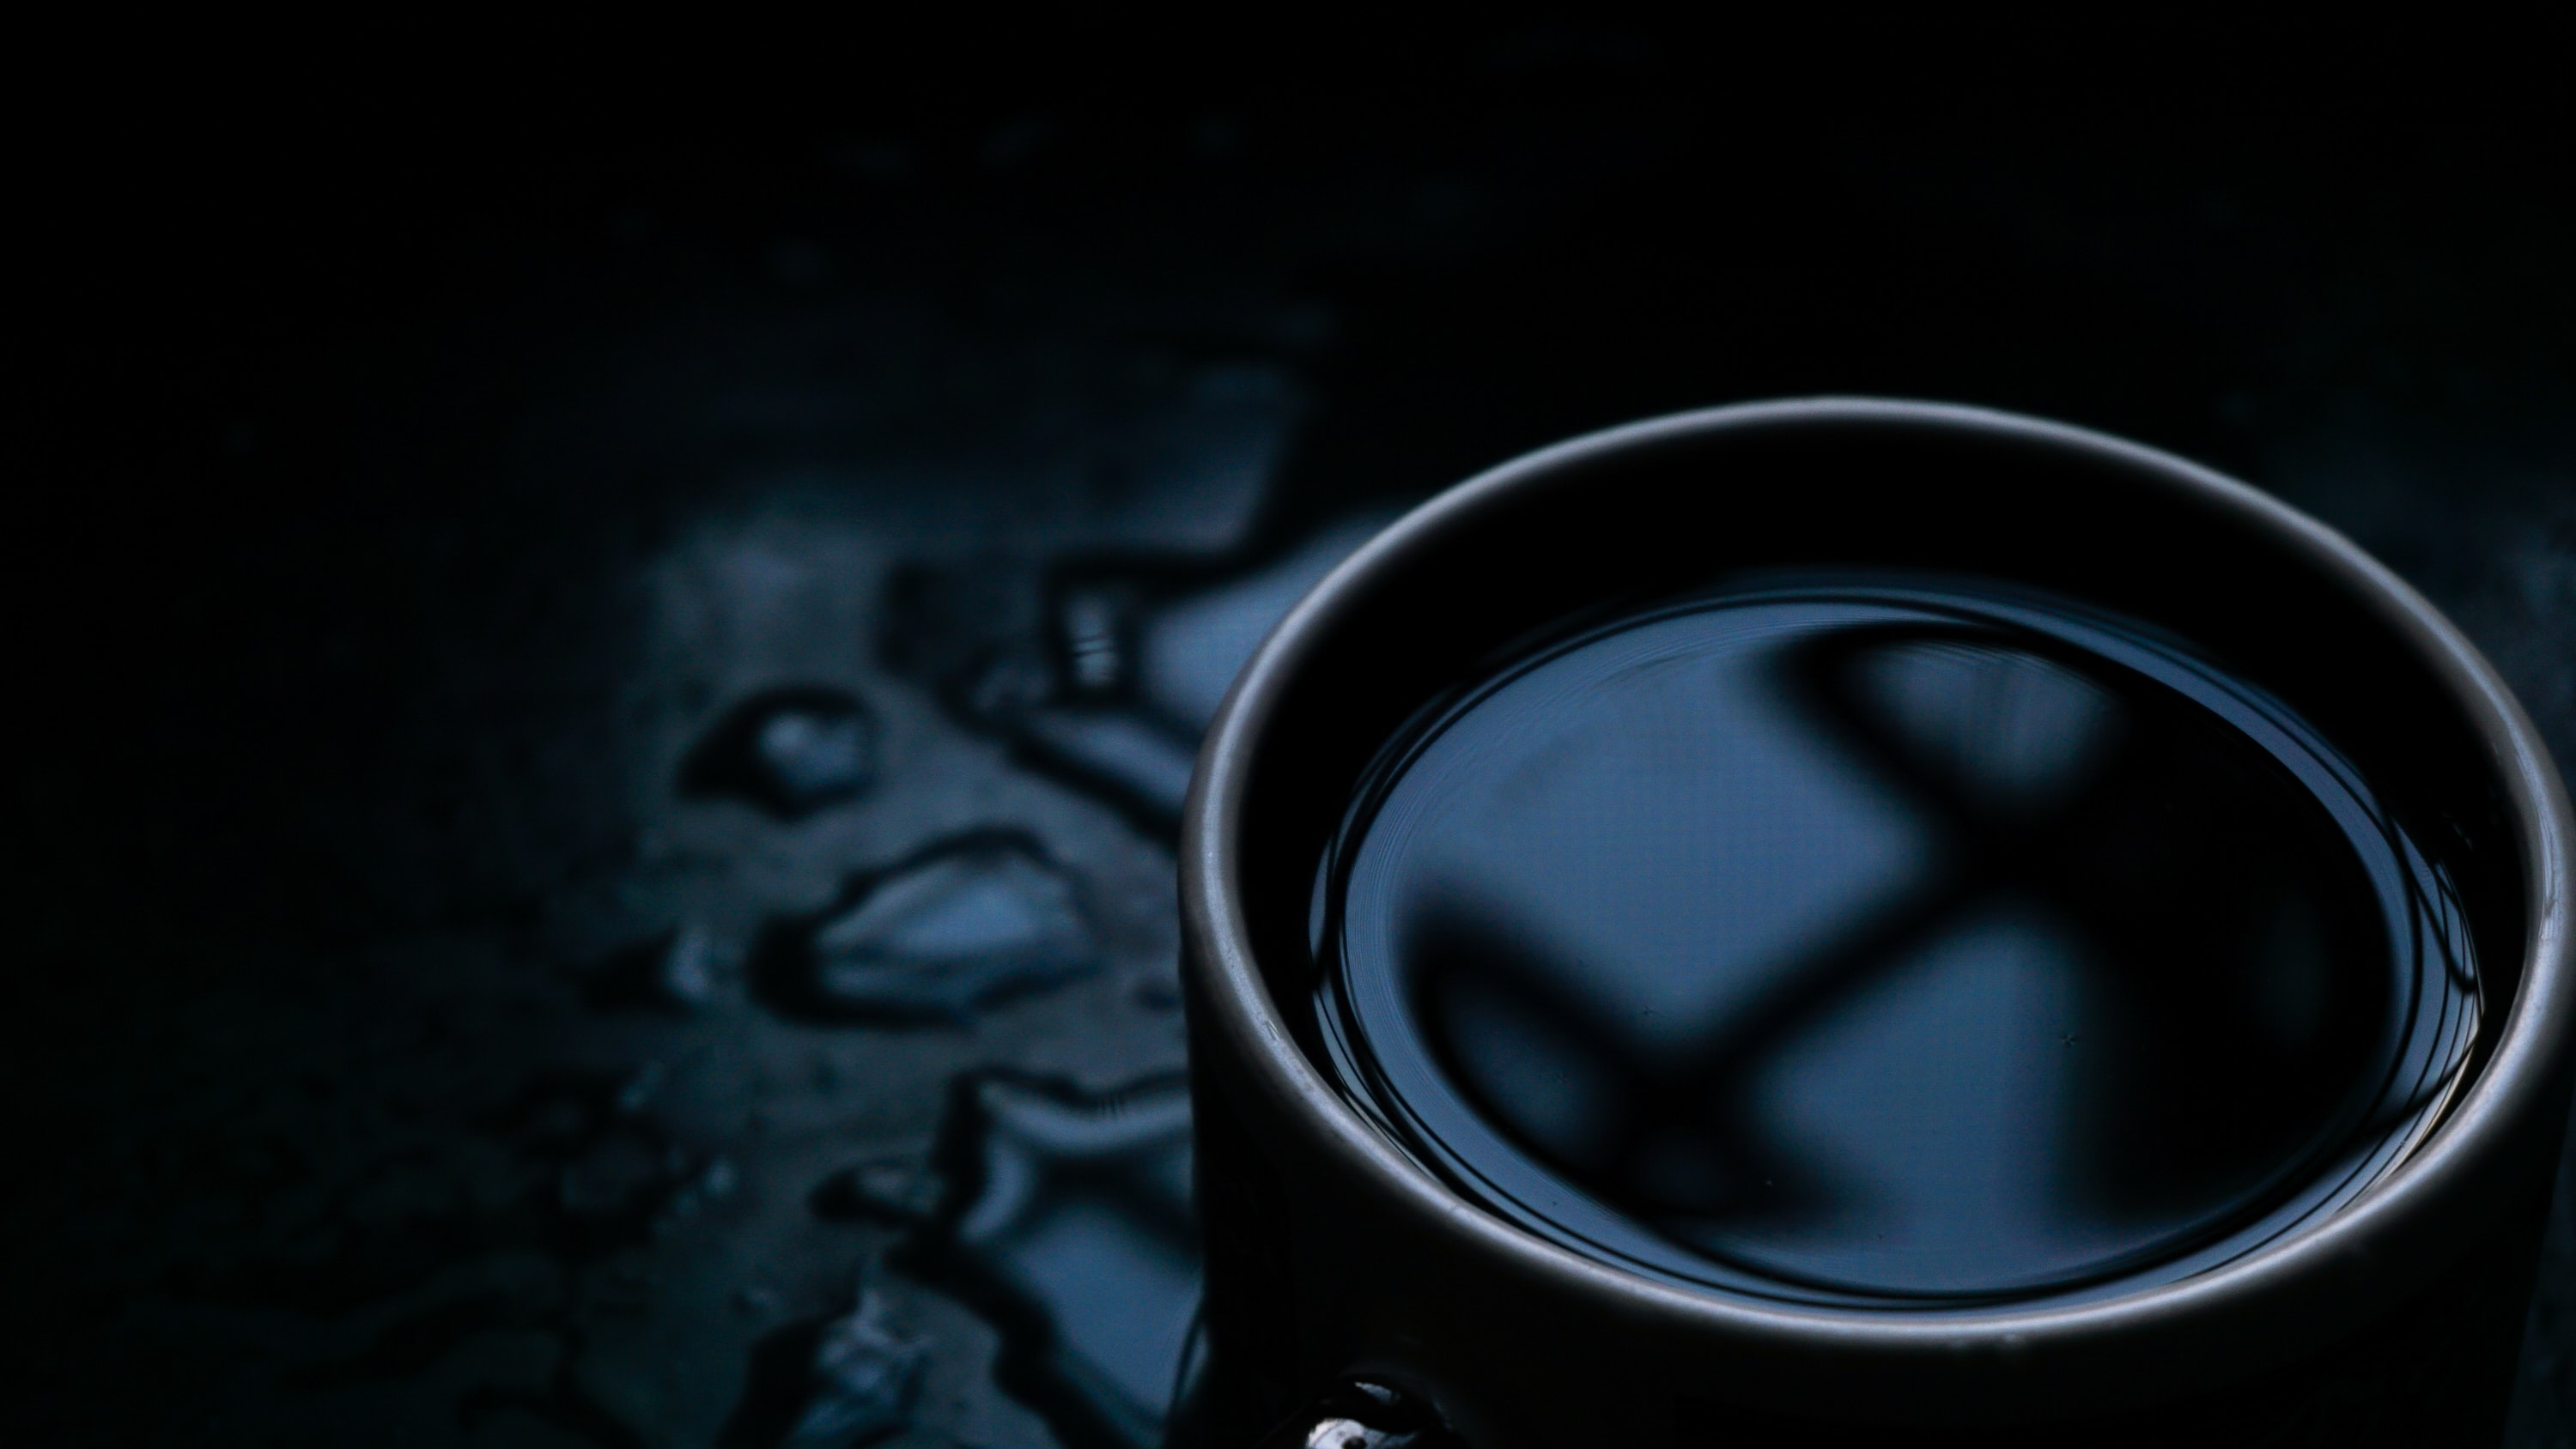 black ceramic mug on wooden surface